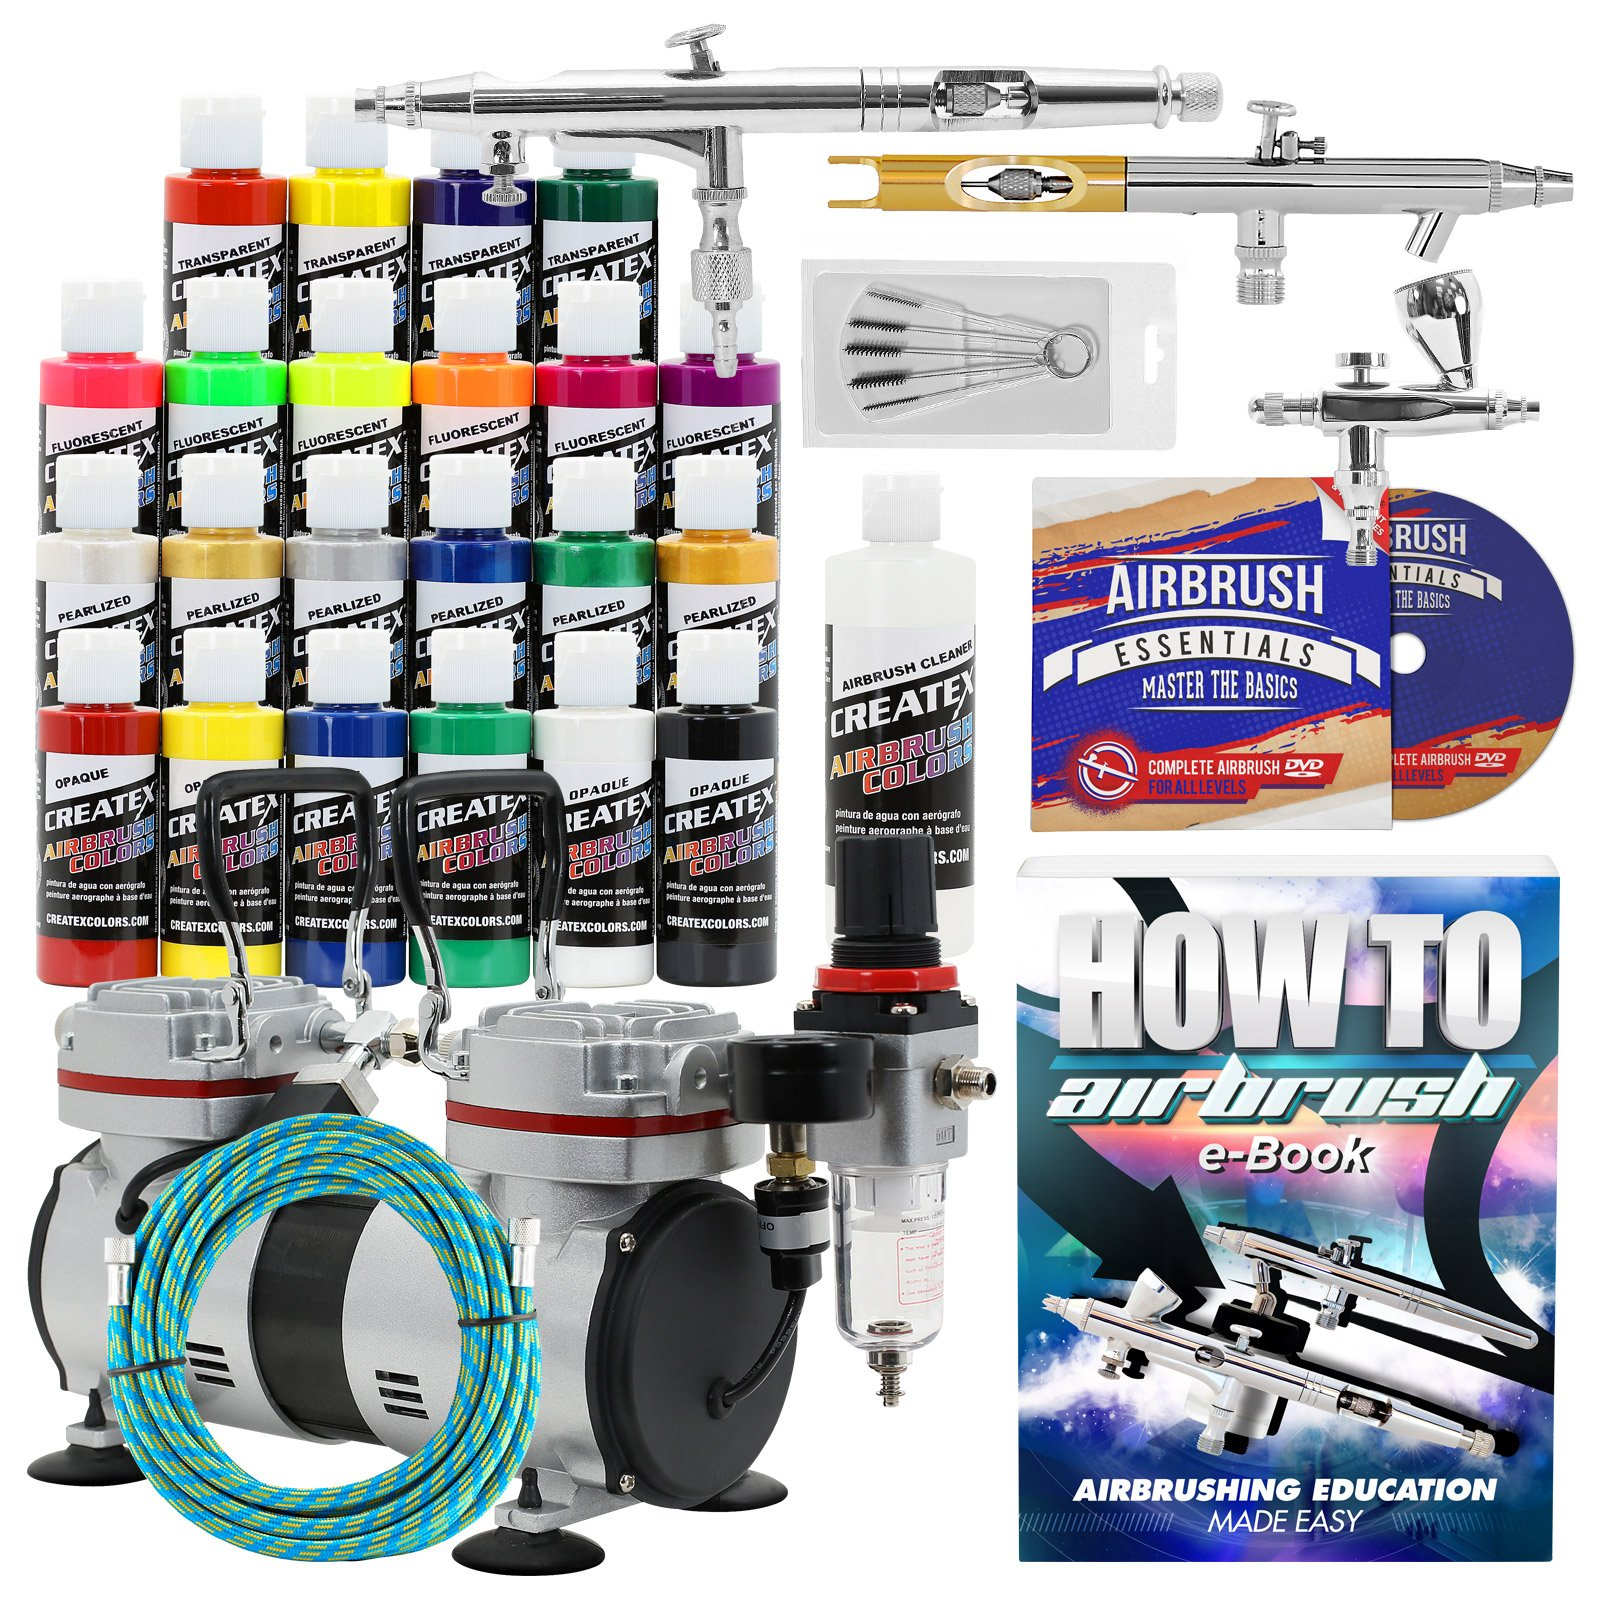 PointZero Multi-purpose 3 Airbrush Kit w/ Compressor and Createx Colors Set of 22 Paints